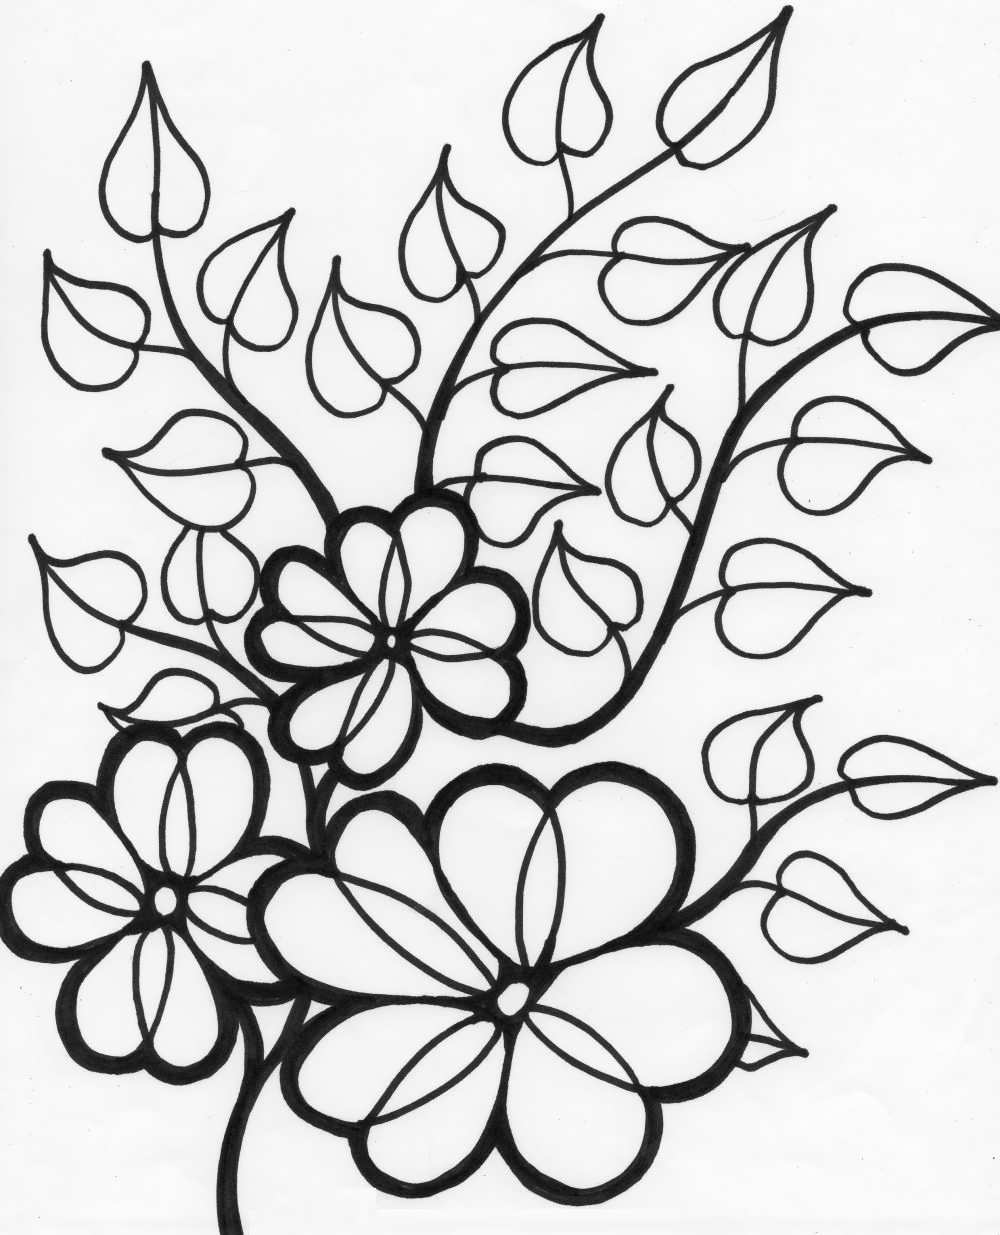 coloring outline images of flowers daisy flower outline free download on clipartmag images of coloring outline flowers